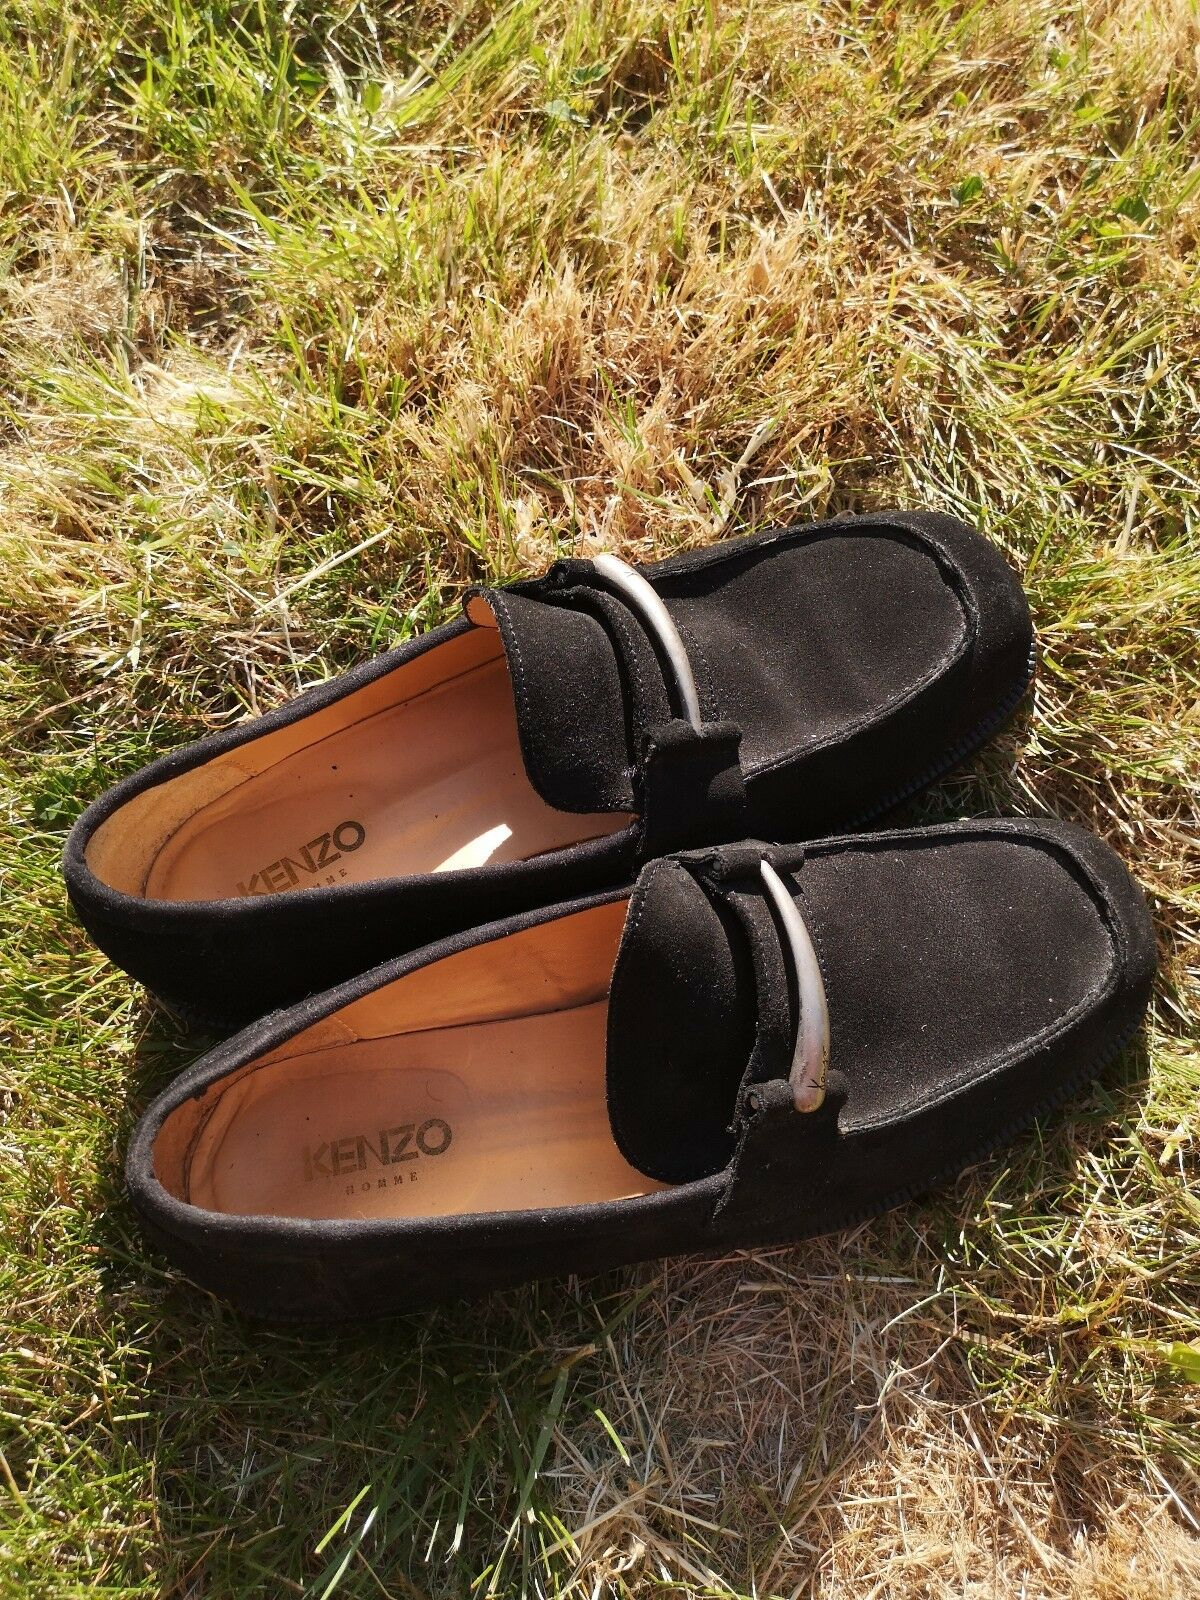 Kenzo Homme Suede Loafer Shoes 9